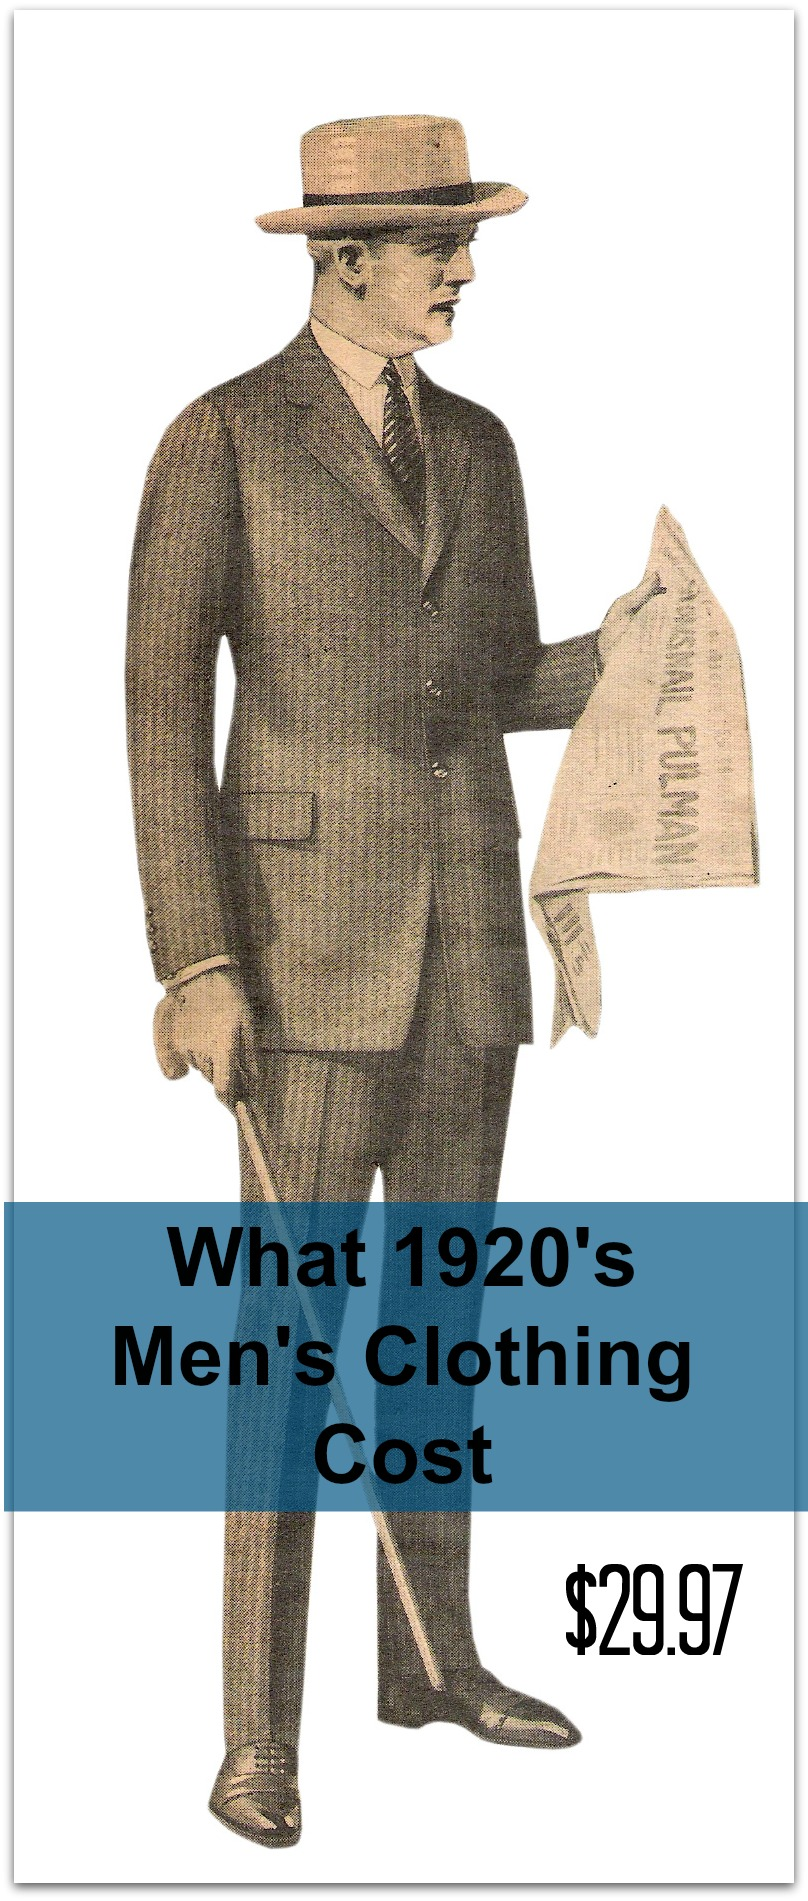 Men's 1920s Clothing and Cost